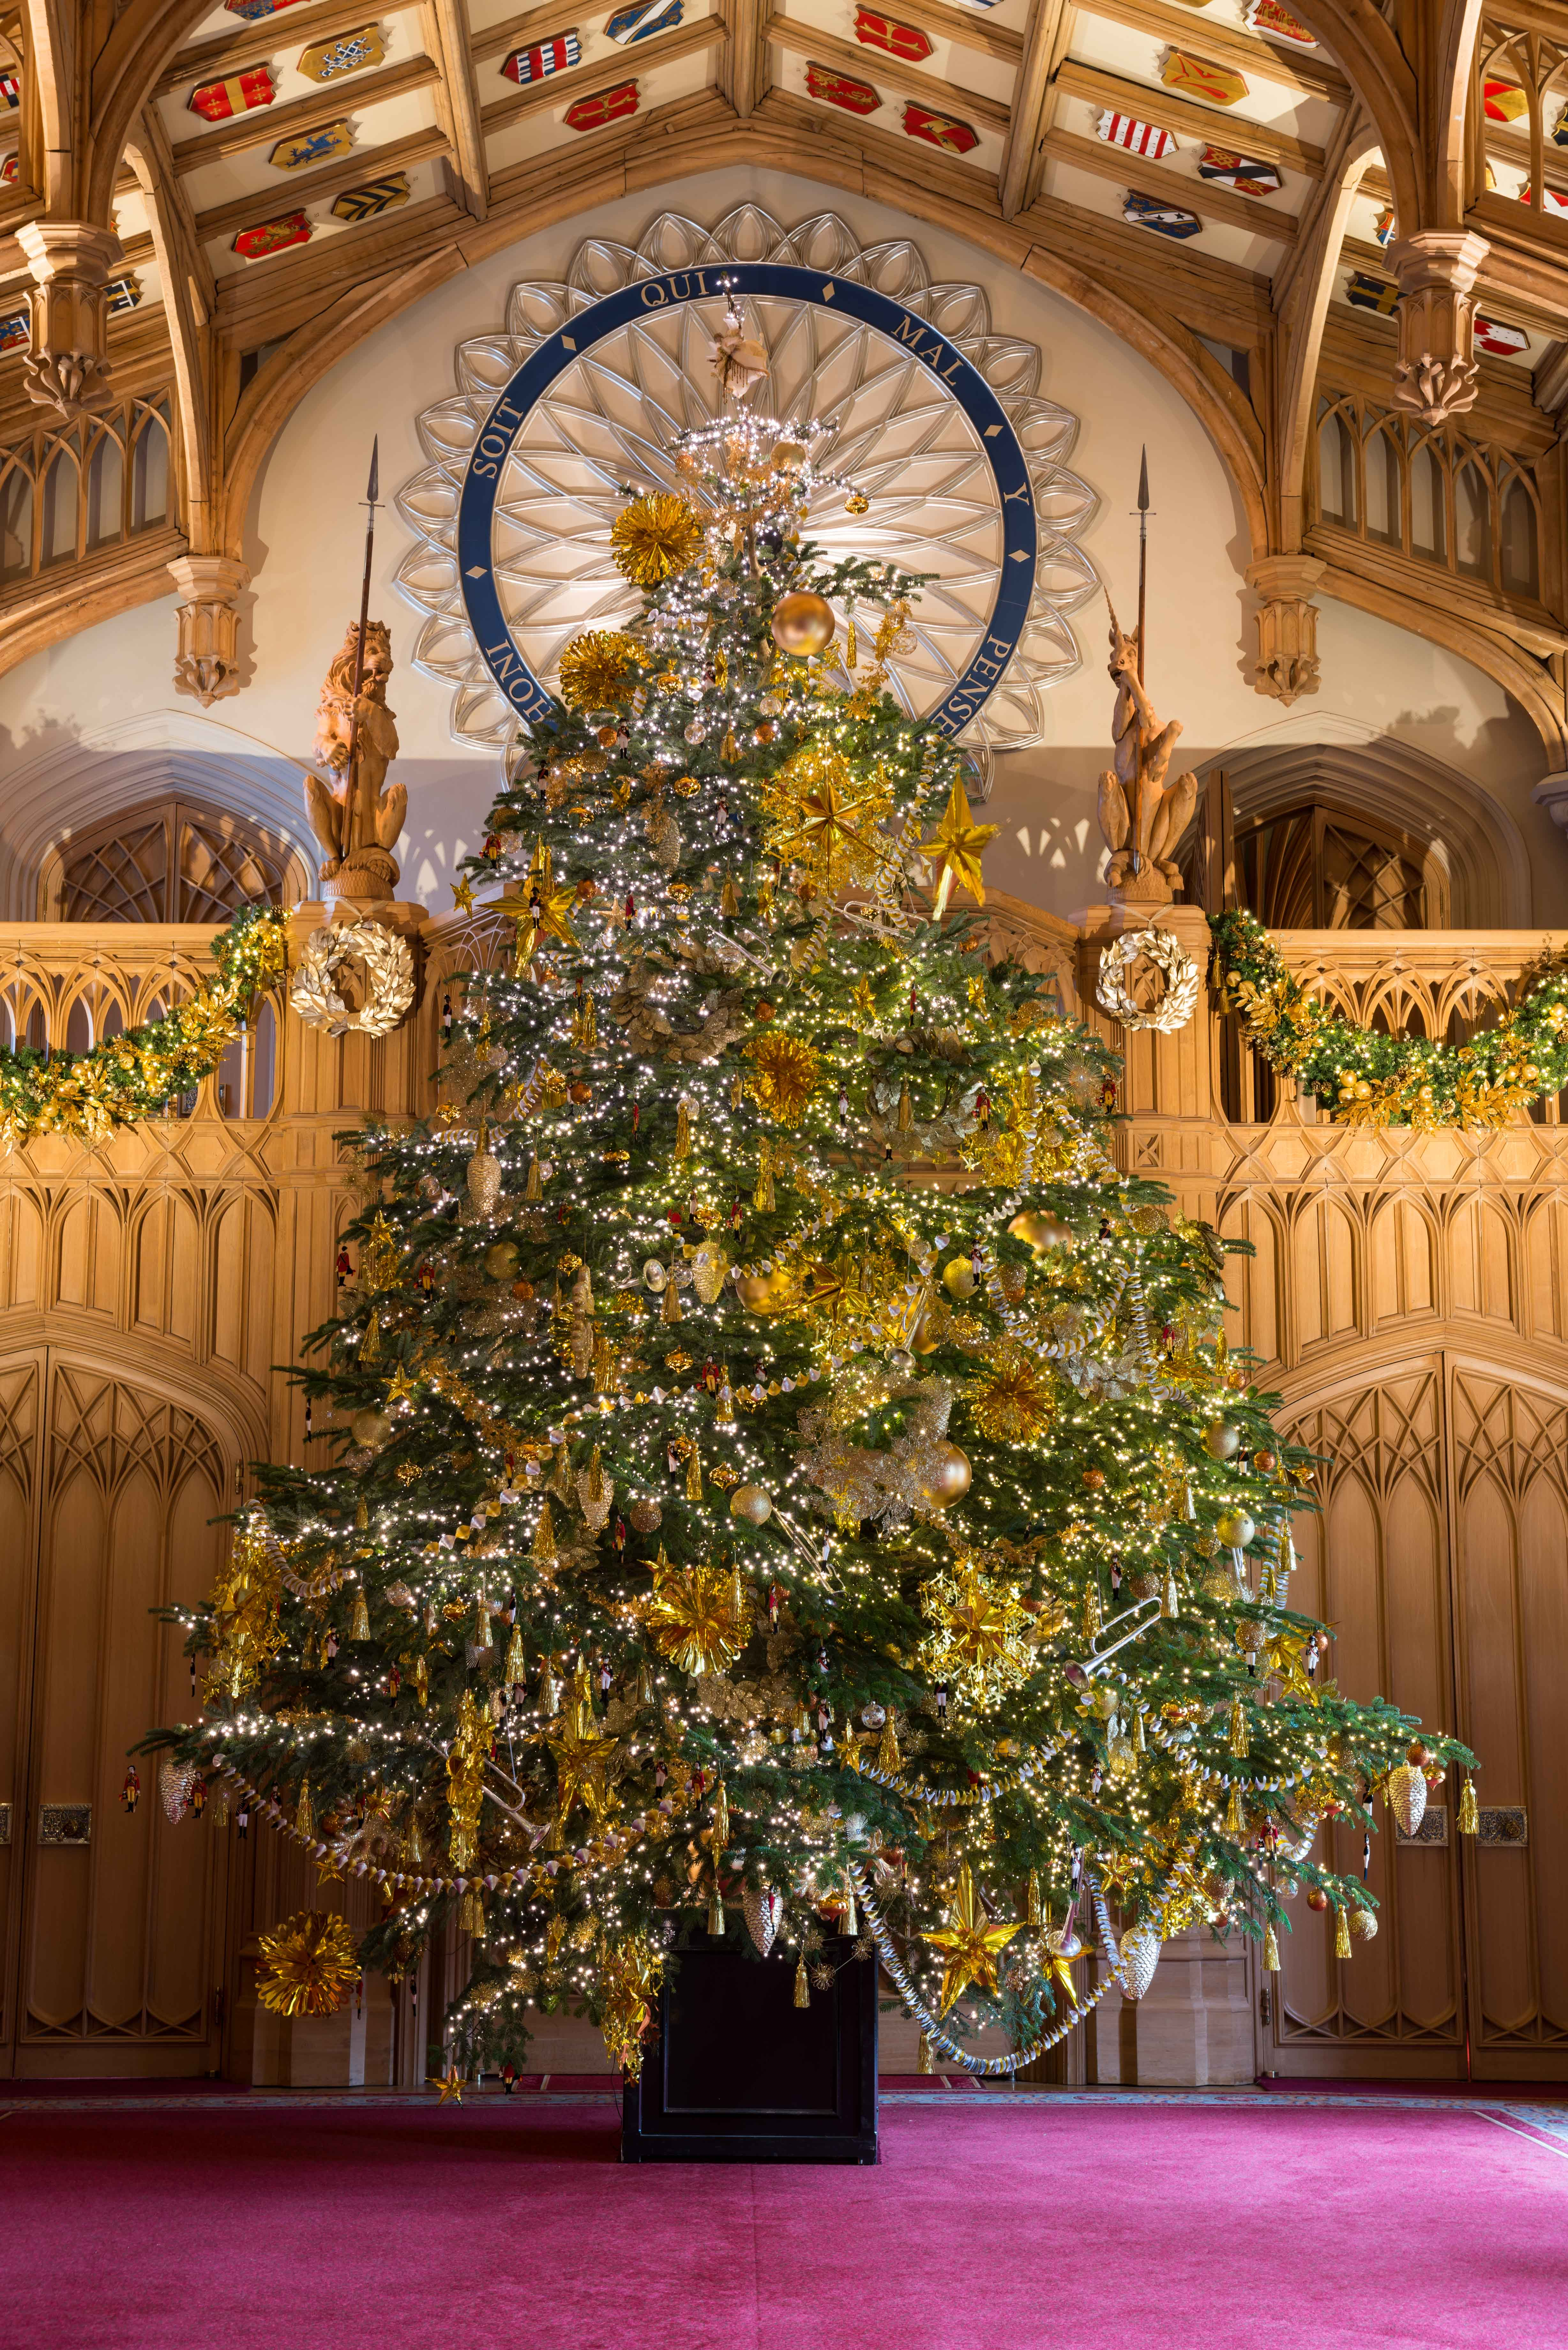 The Christmas tree in Windsor Castle